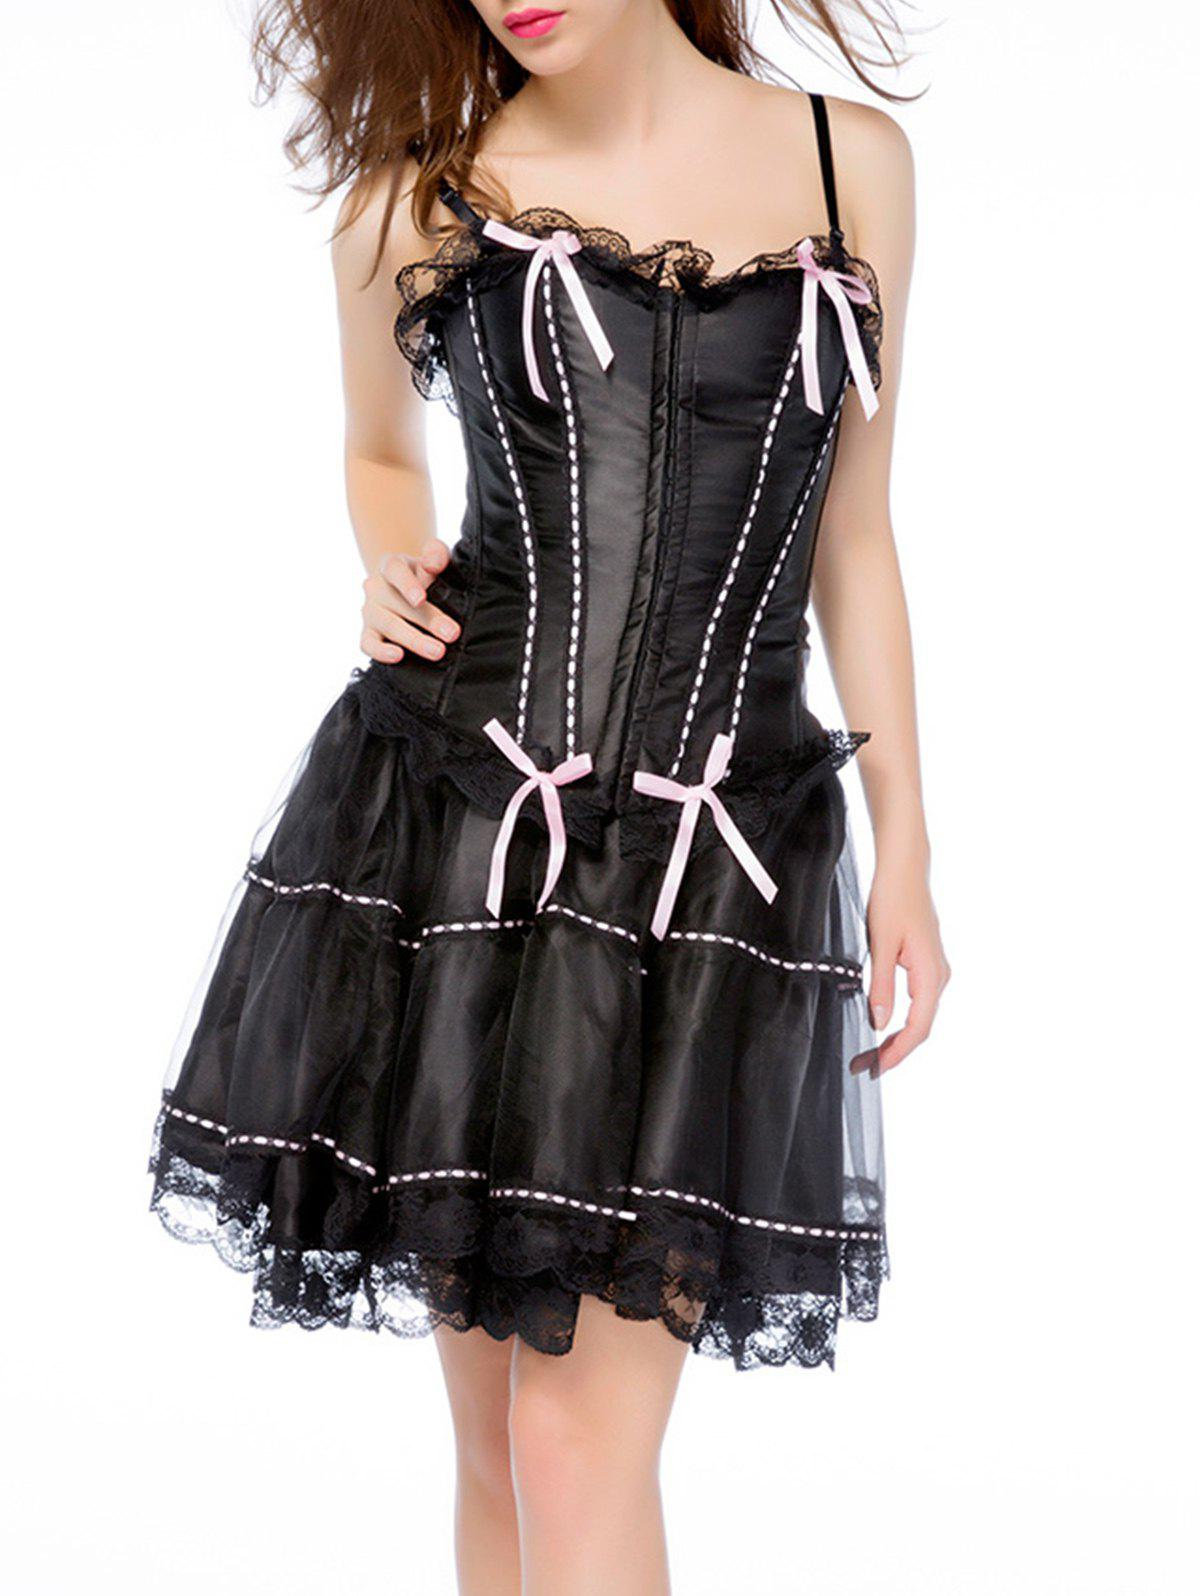 35% OFF] Plus Size Gothic Lace Corset Skirt | Rosegal